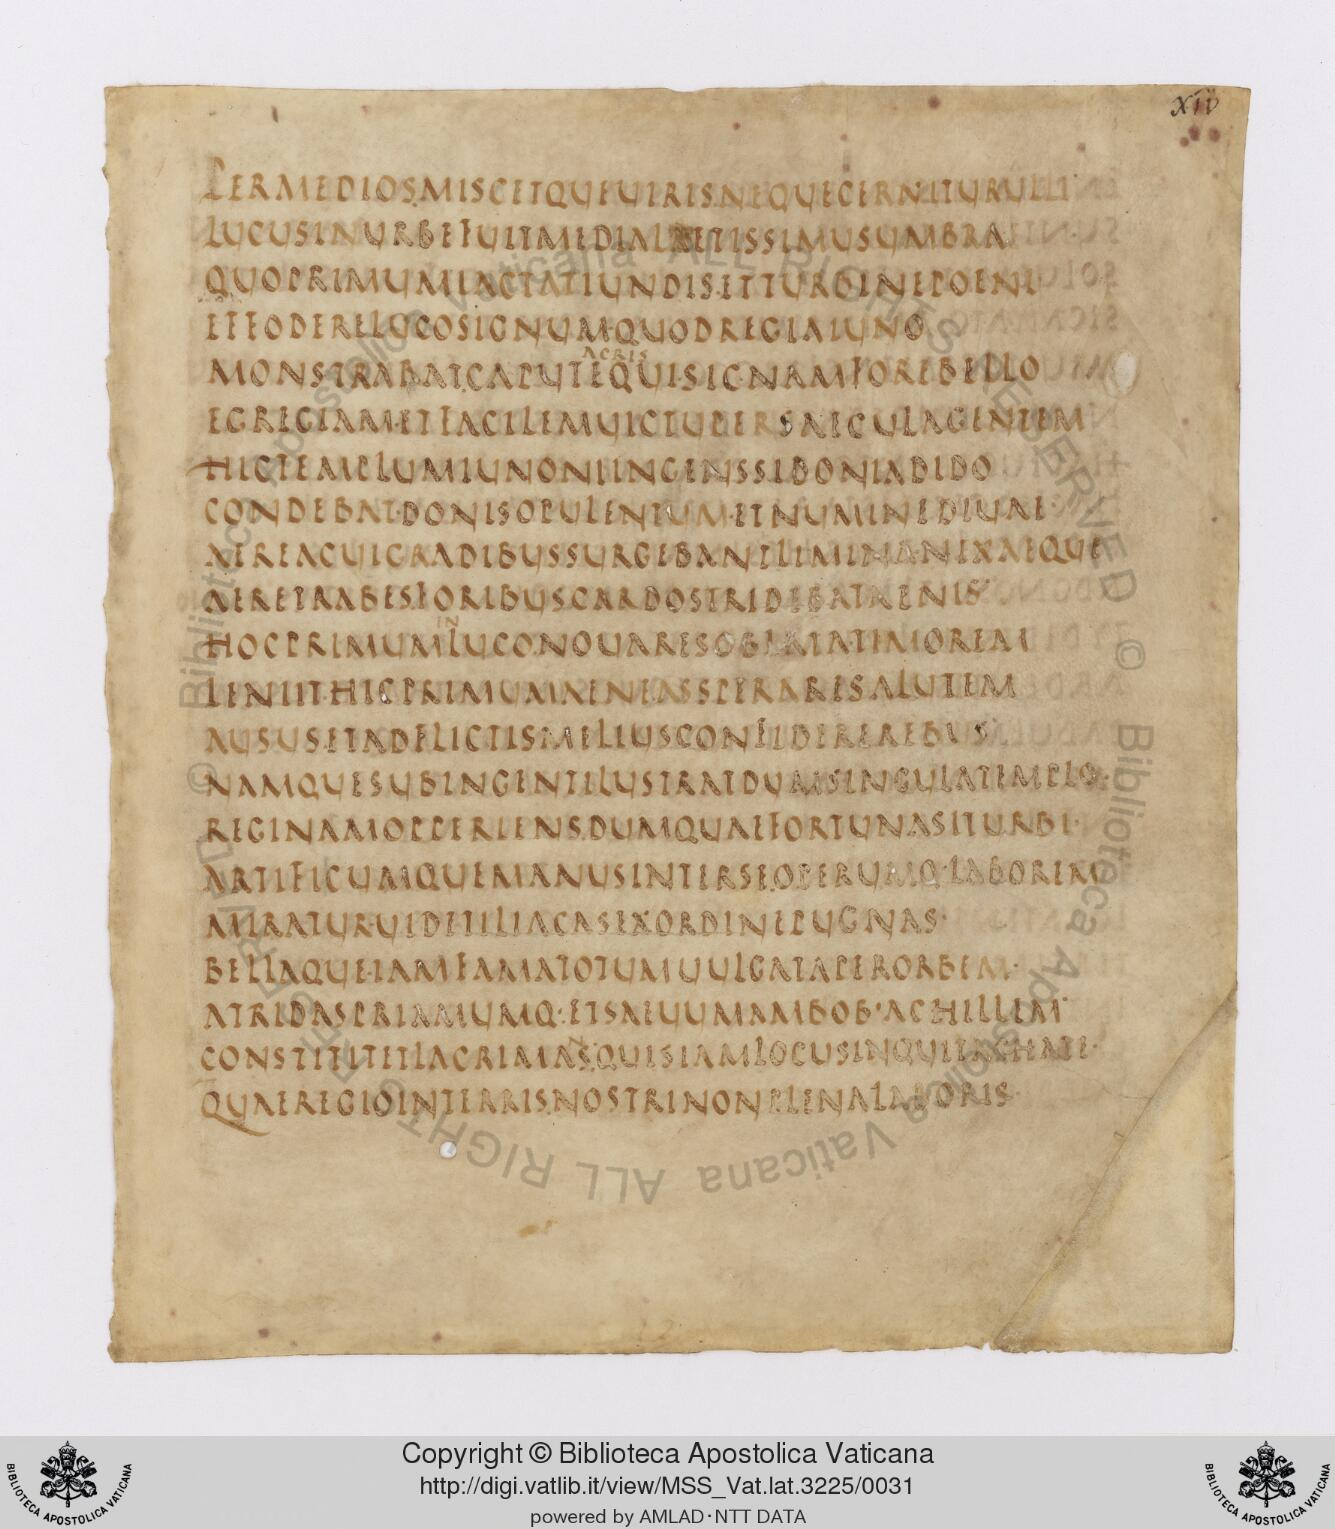 This manuscript, Vergilius Vaticanus, is one of the oldest documents that have gone through the digitization process so far.